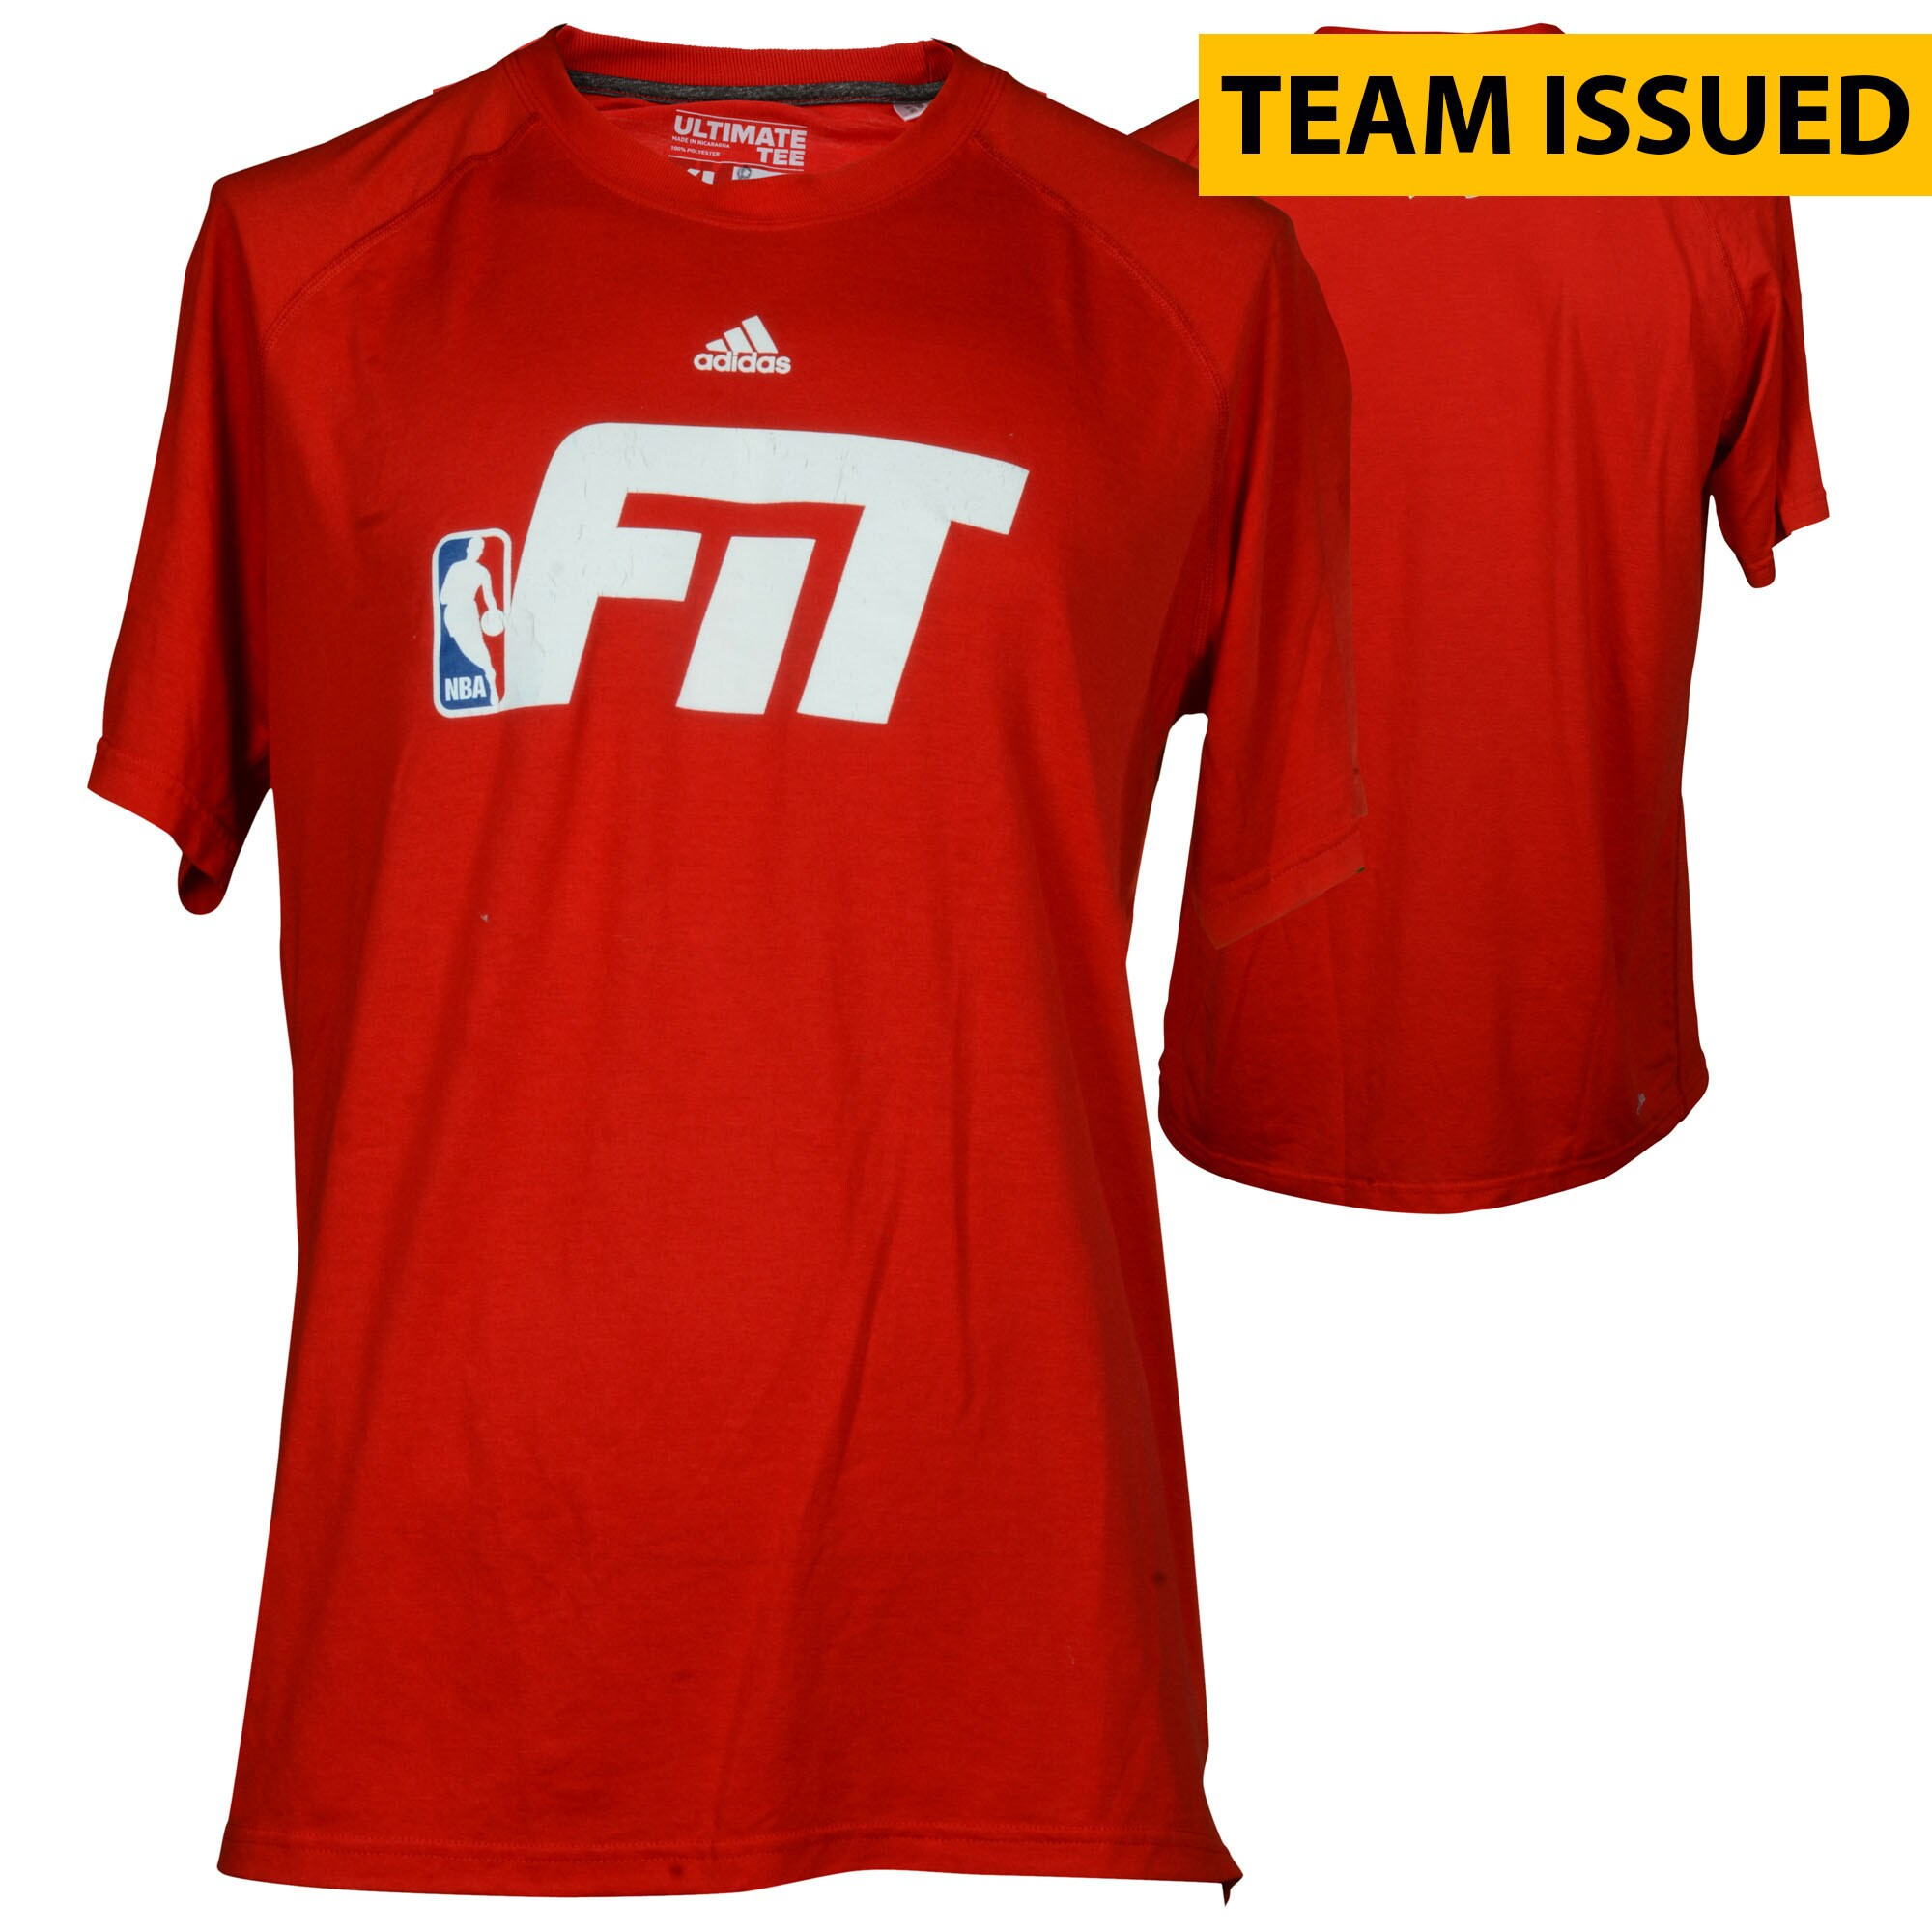 """Philadelphia 76ers Fanatics Authentic Team-Issued Red """"Fit"""" Shooter Shirt from the 2016-17 NBA Season - Size XL"""